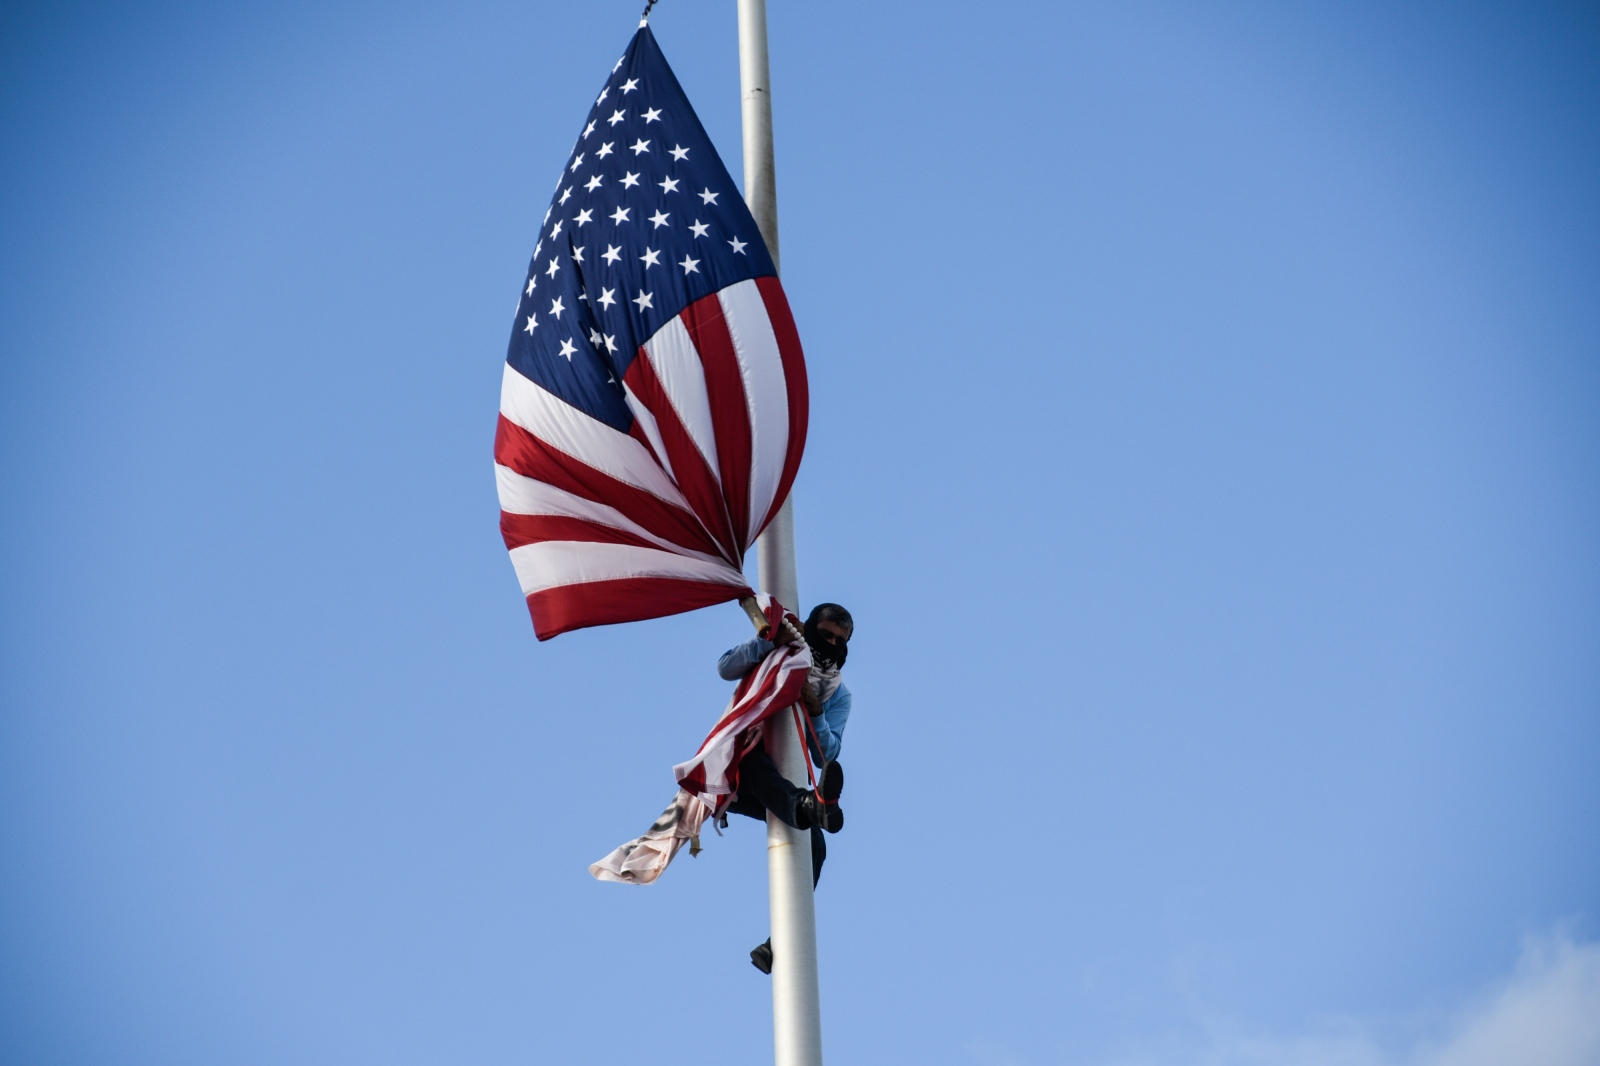 Environmental activist Tito Kayak takes down the US flag during the protests calling for the resignation of Governor of Puerto Rico, Ricardo Rosselló. Shot while on assignment for Reuters on July 17, 2019.